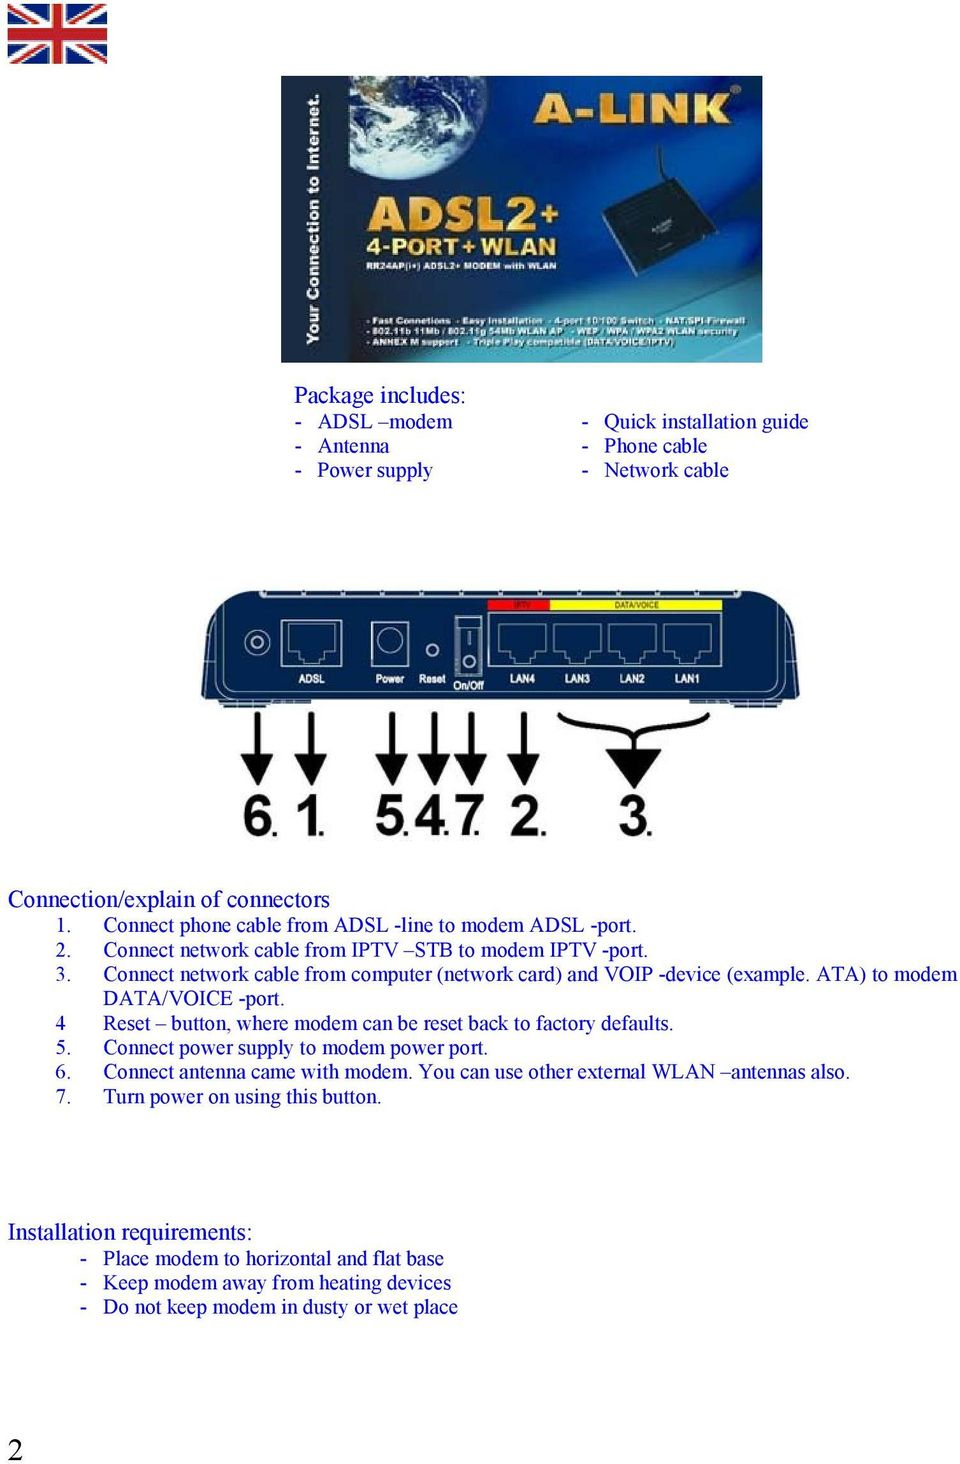 Connect network cable from computer (network card) and VOIP -device (example. ATA) to modem DATA/VOICE -port. 4 Reset button, where modem can be reset back to factory defaults. 5.